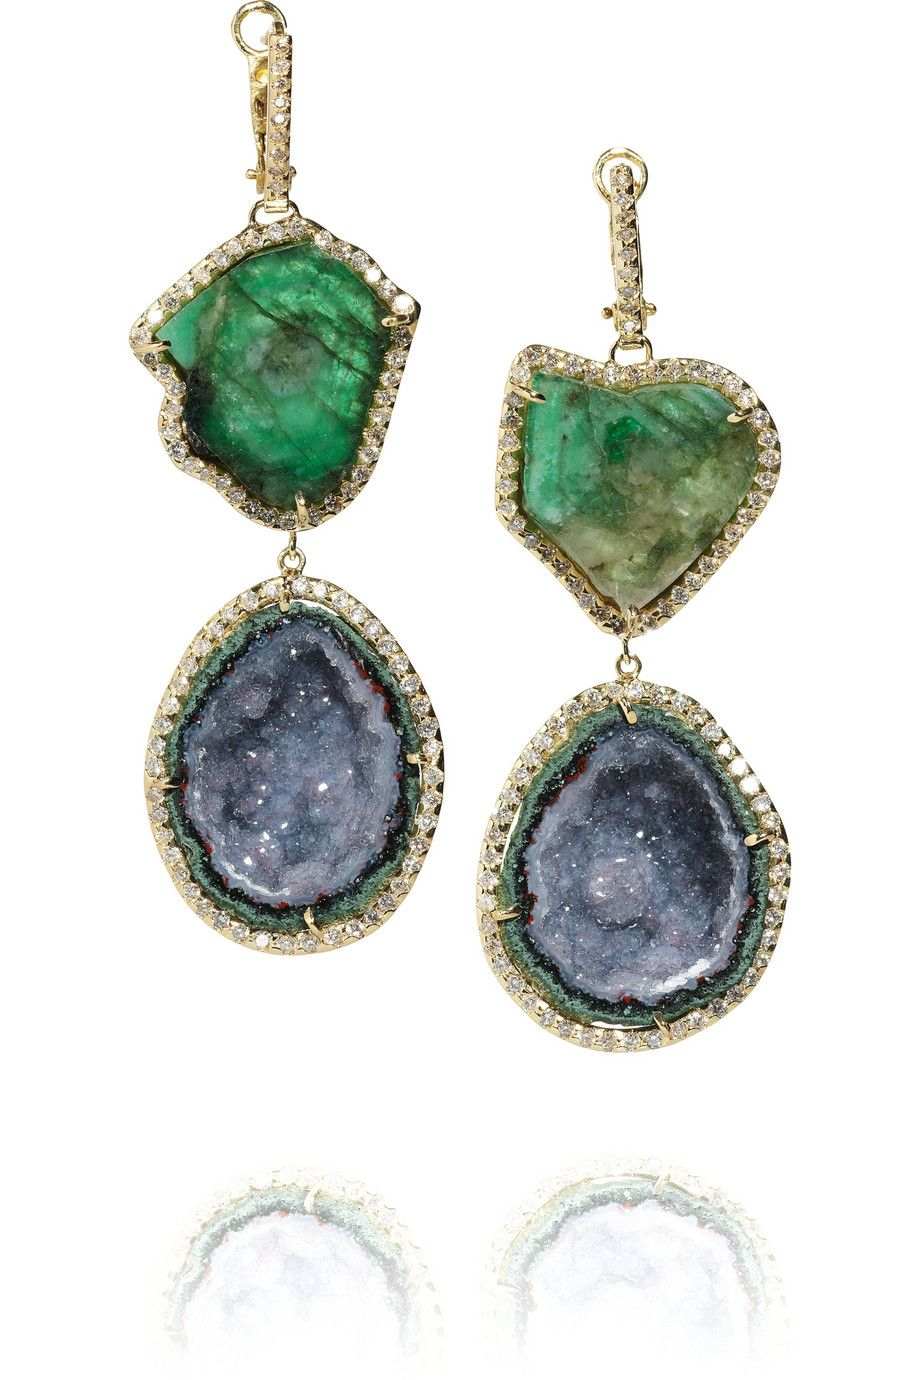 kimberly mcdonald gold/diamond/emerald earrings